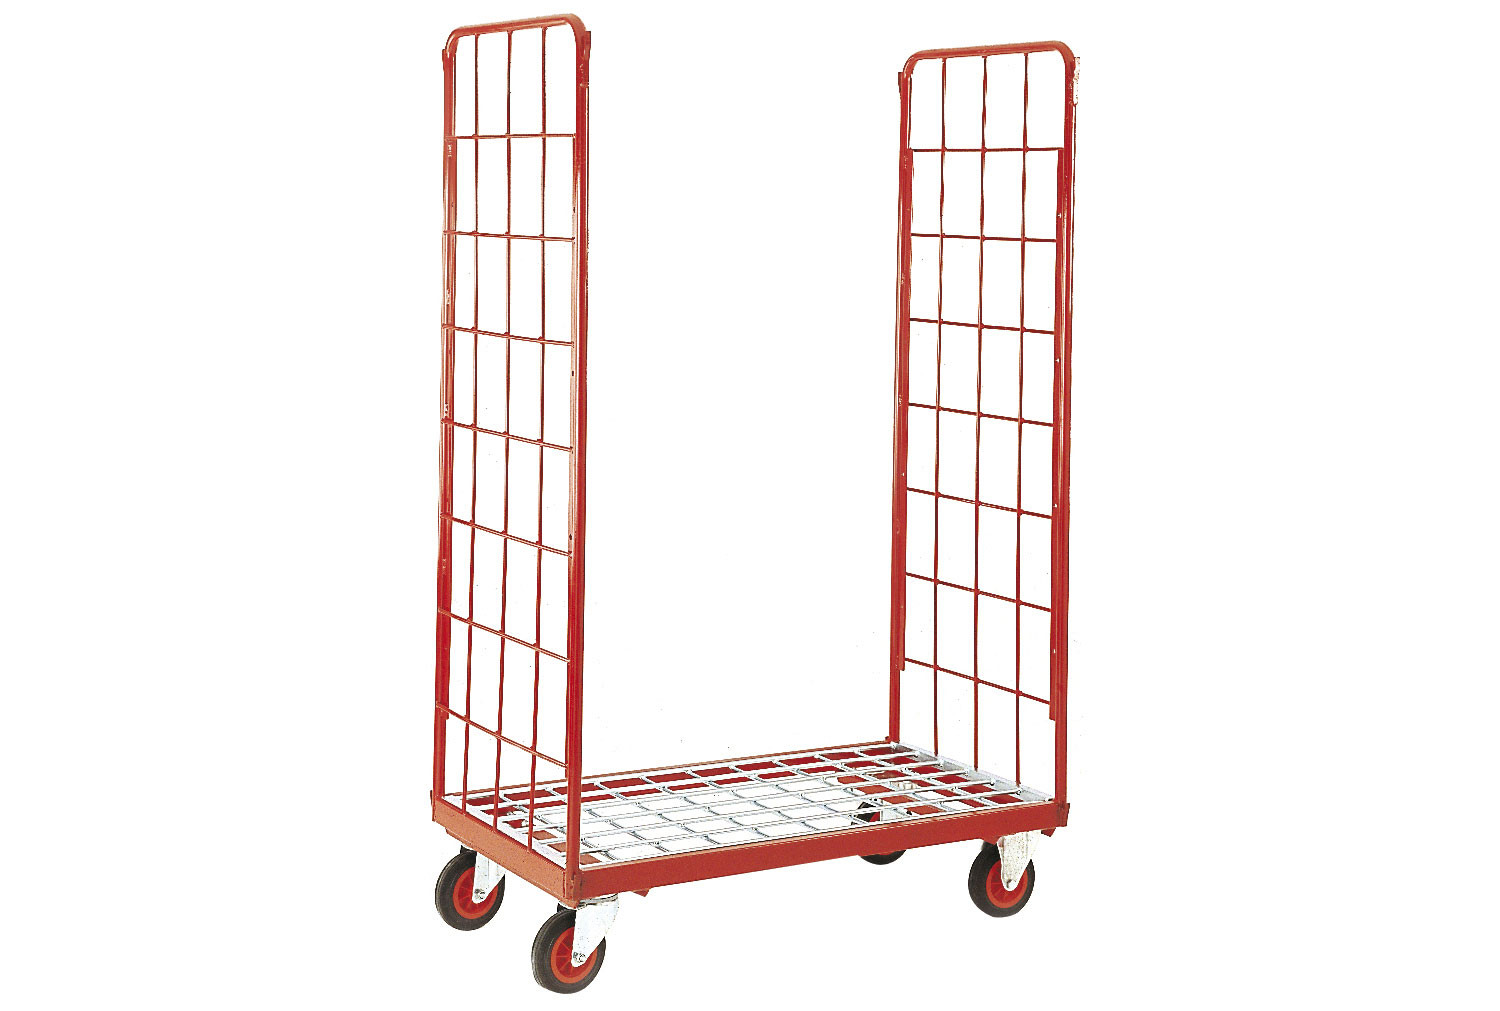 Narrow Aisle Distribution Truck With 2 Ends